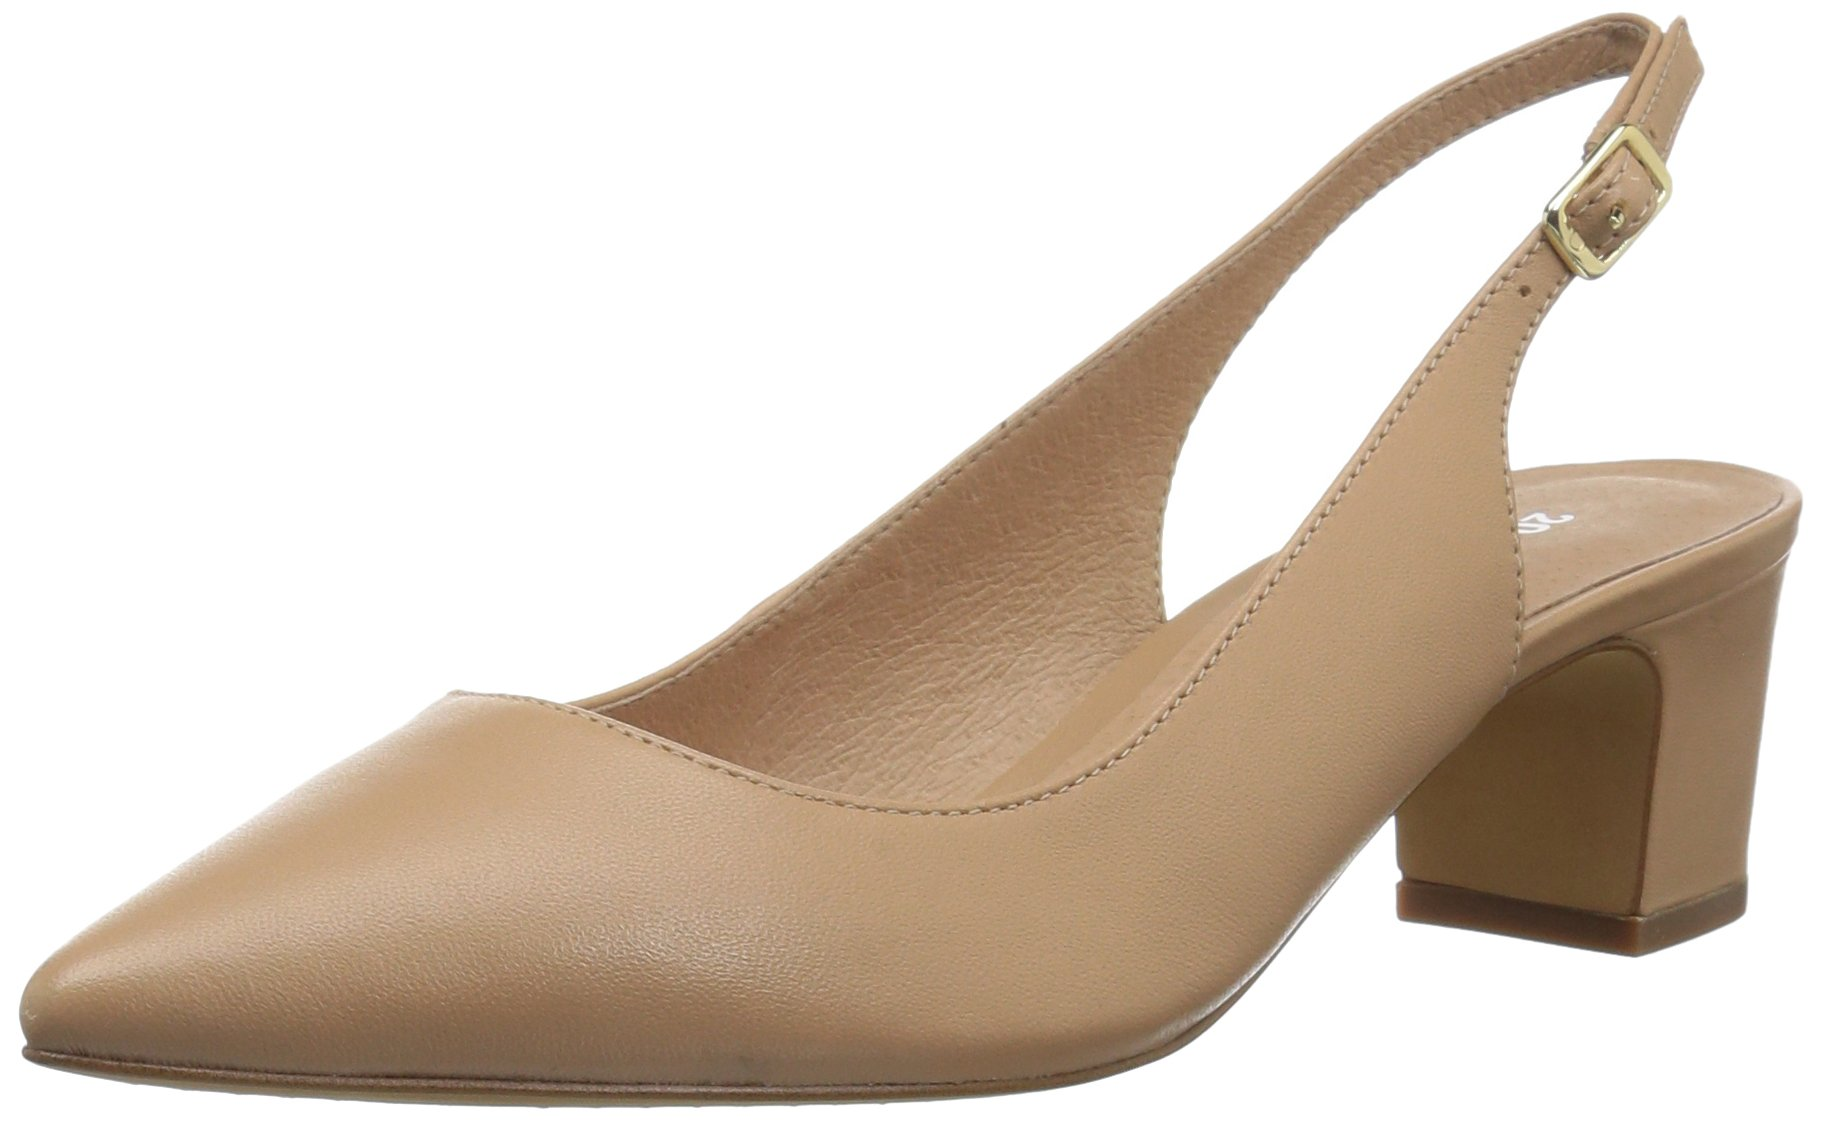 206 Collective Women's Laila Sling Back Dress Pump, Neutral Leather, 12 B US